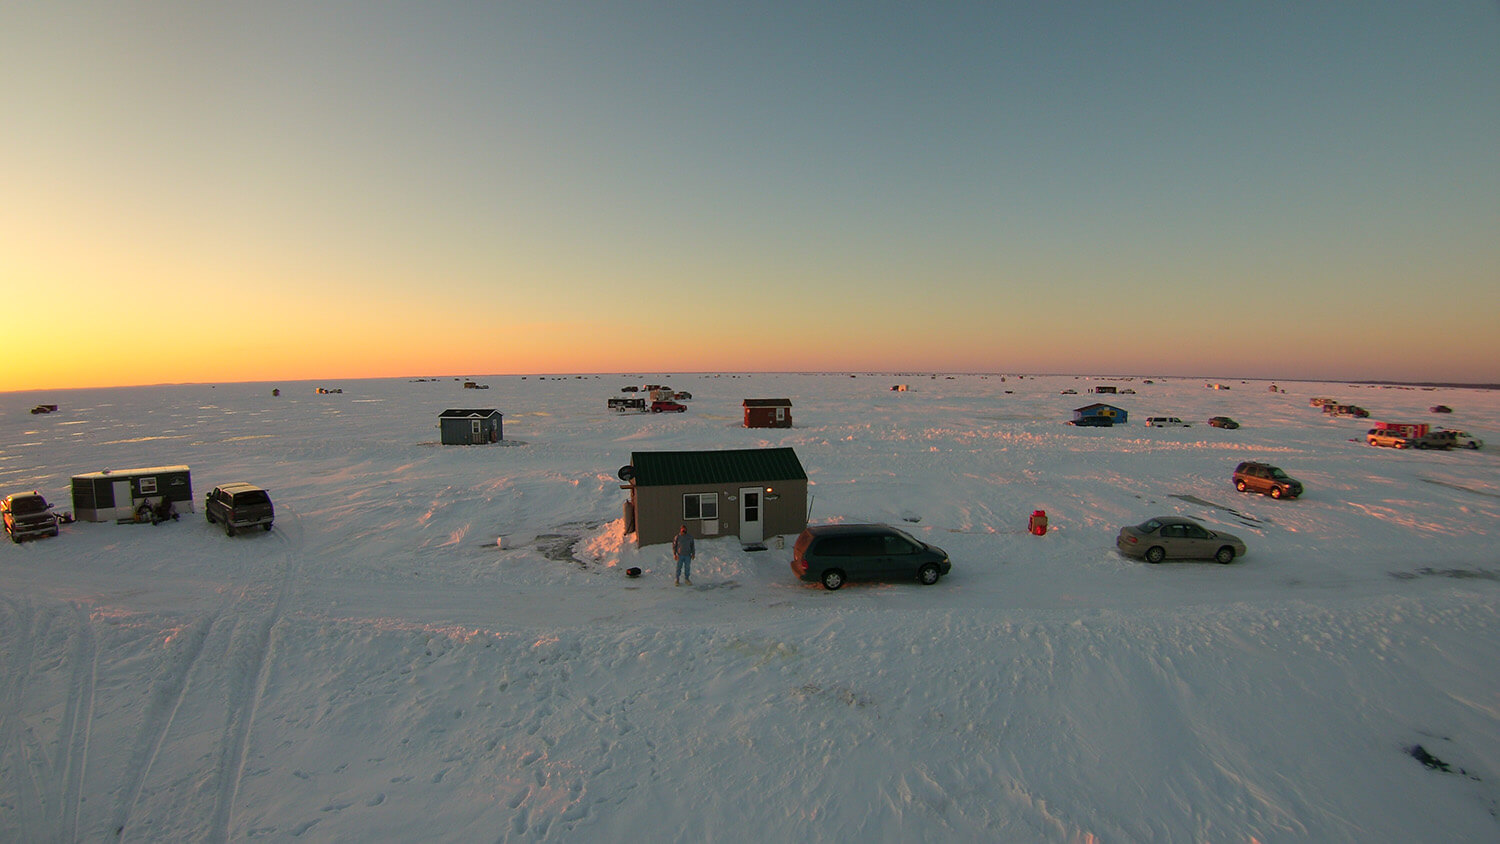 Mille lacs lake ice fishing house rentals ice fishing for Lake mille lacs ice fishing